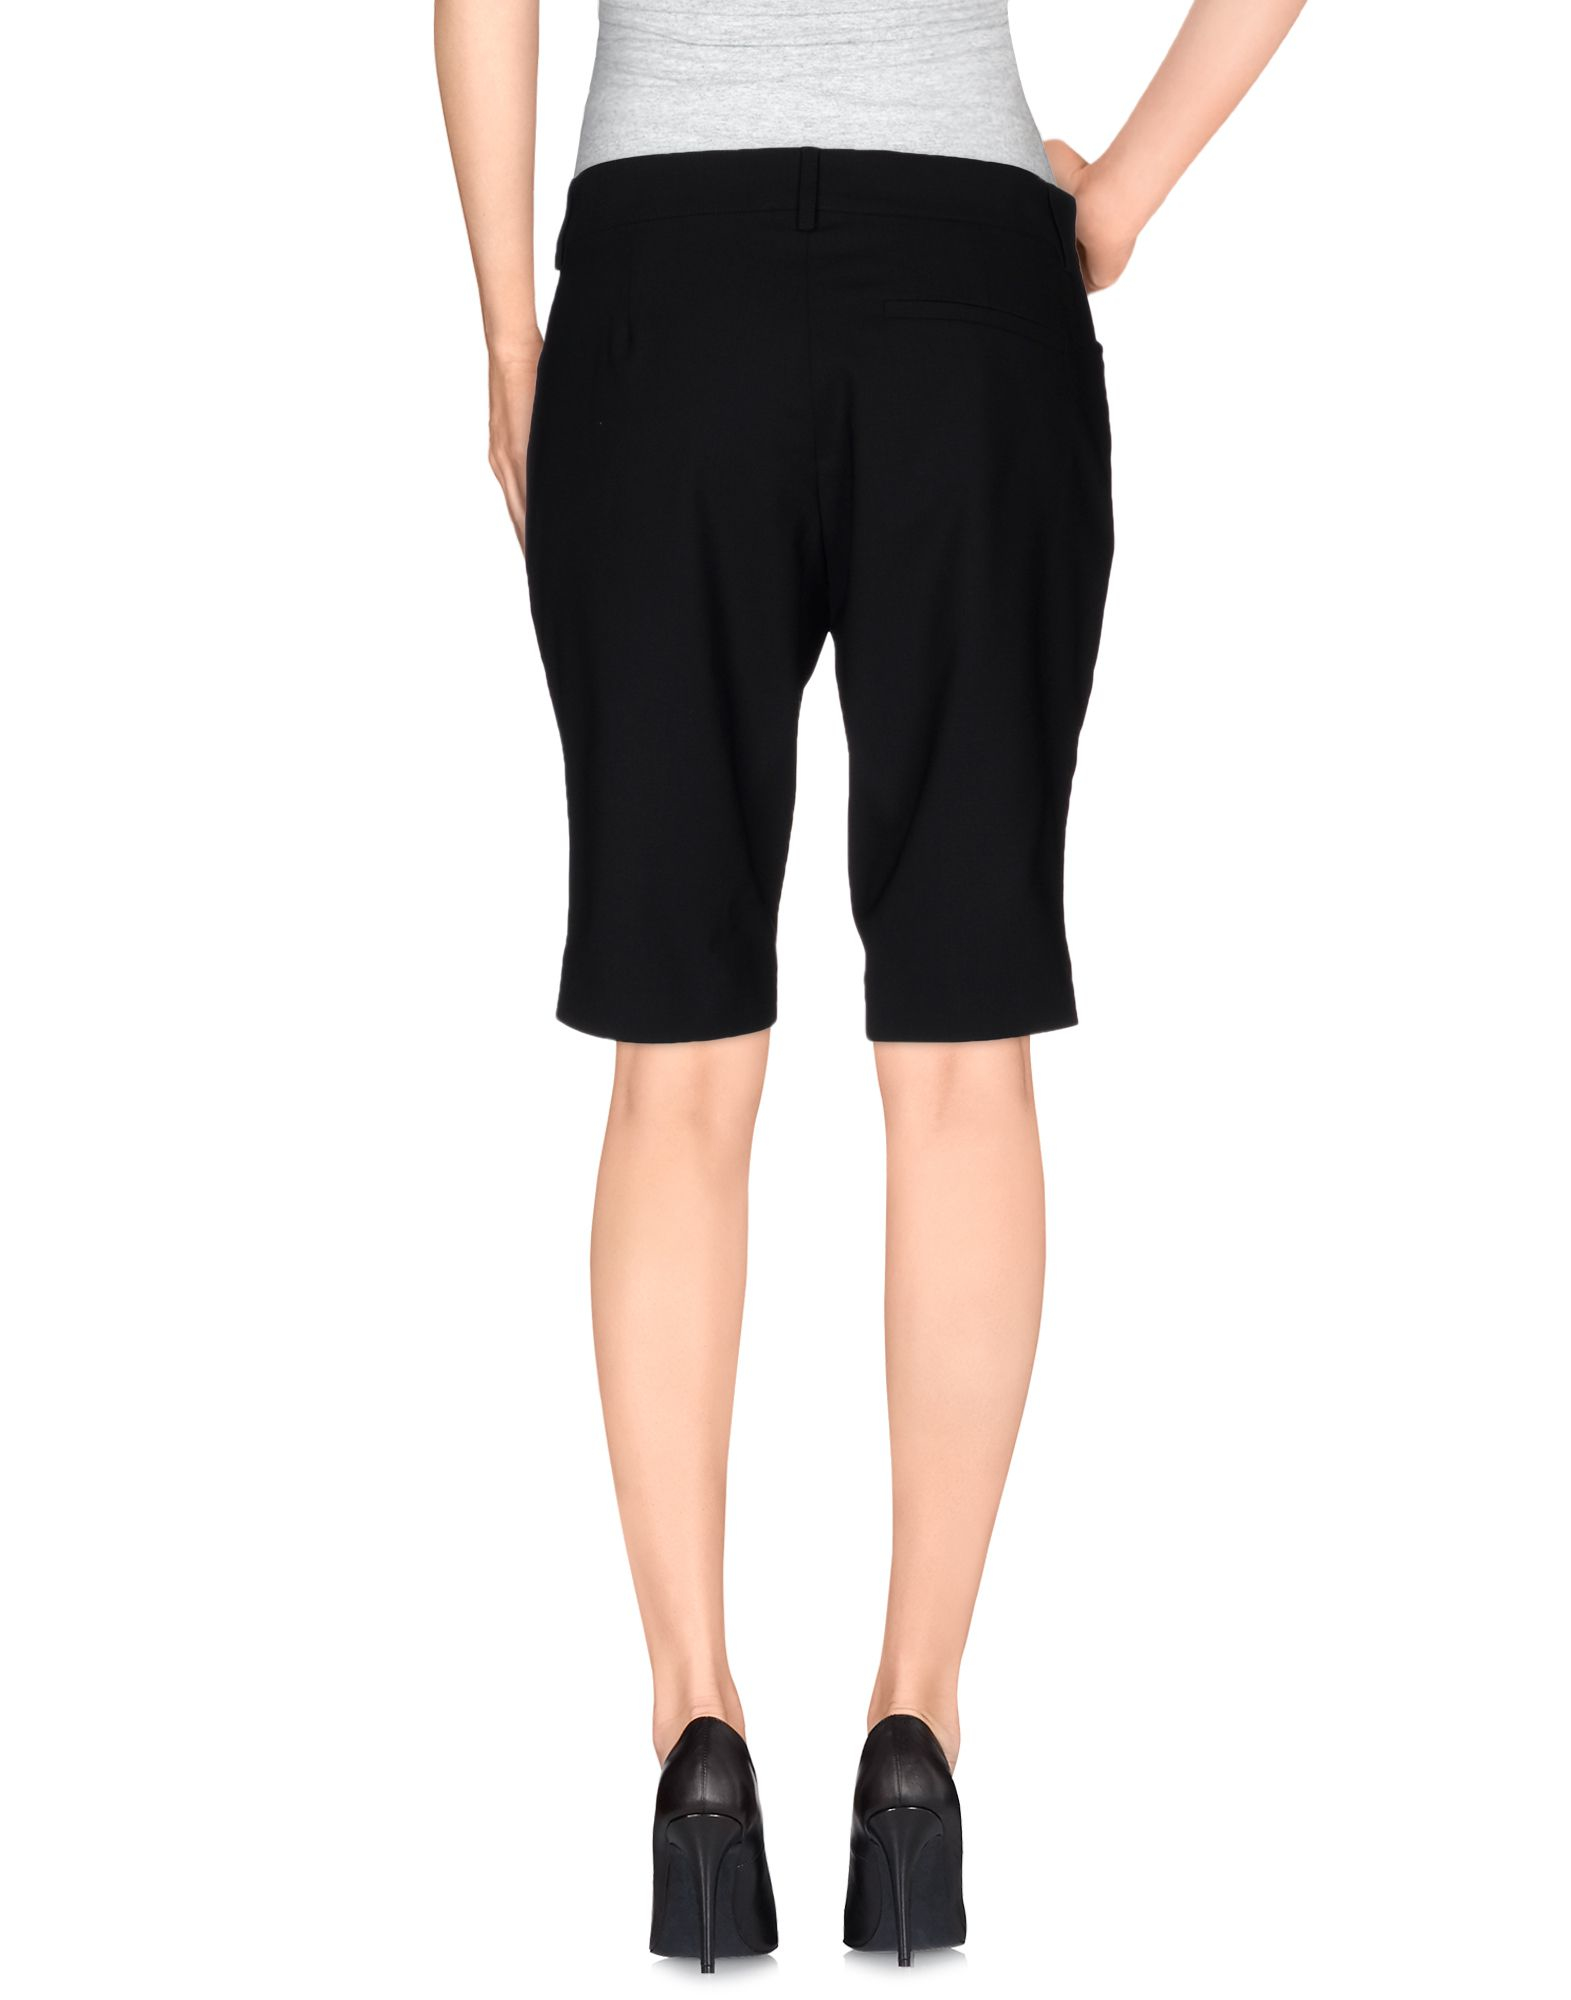 Buy the latest black bermuda shorts cheap shop fashion style with free shipping, and check out our daily updated new arrival black bermuda shorts at cpdlp9wivh506.ga